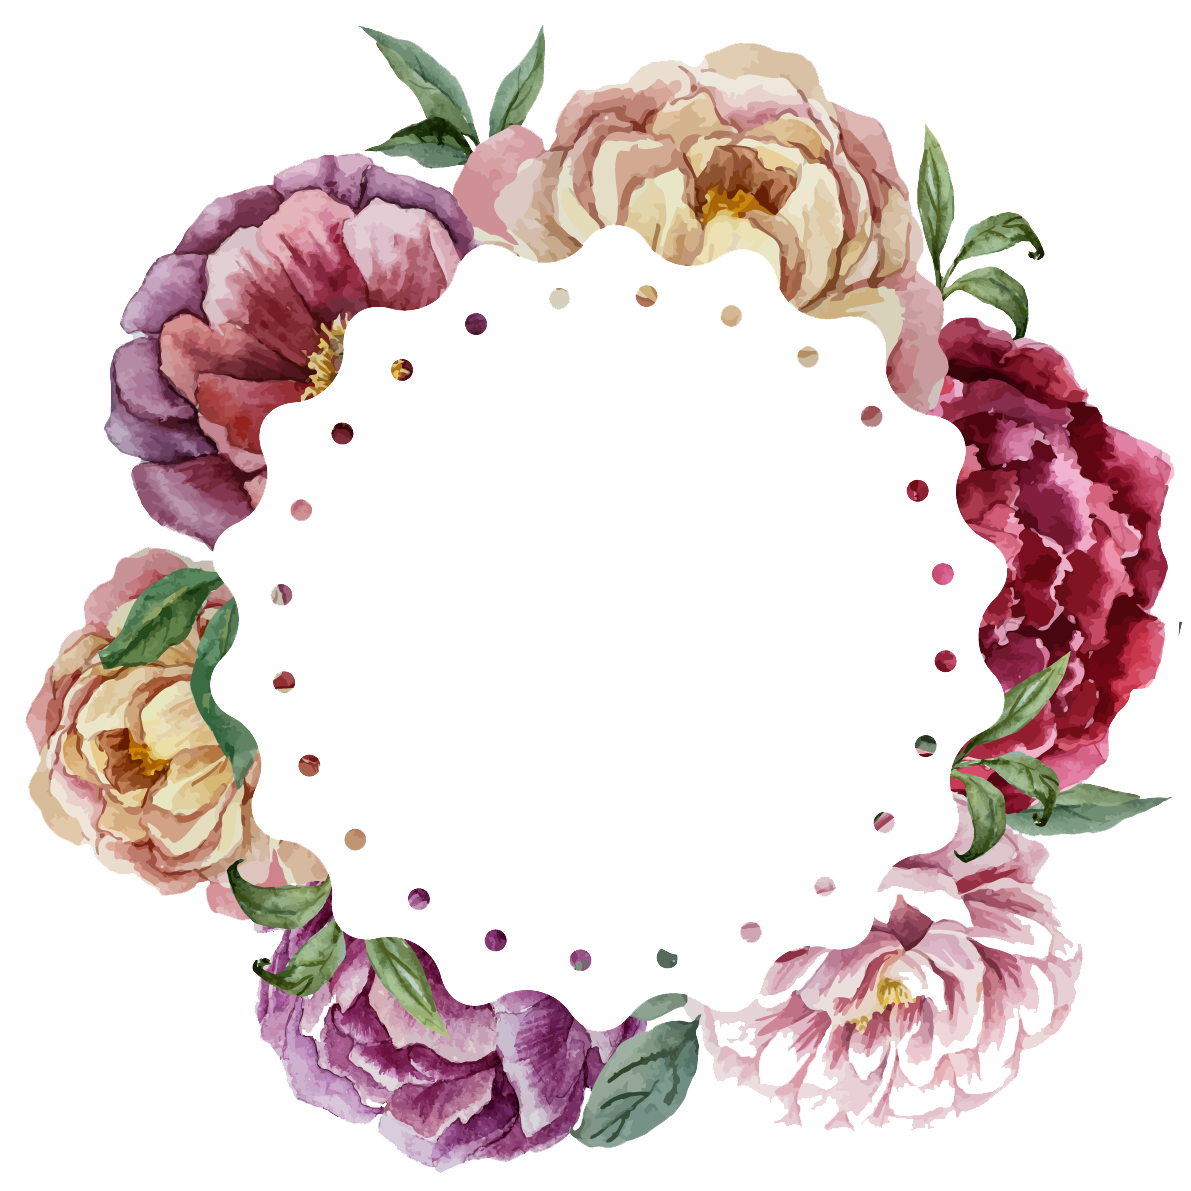 Watercolor painting Flower Wreath Wedding.